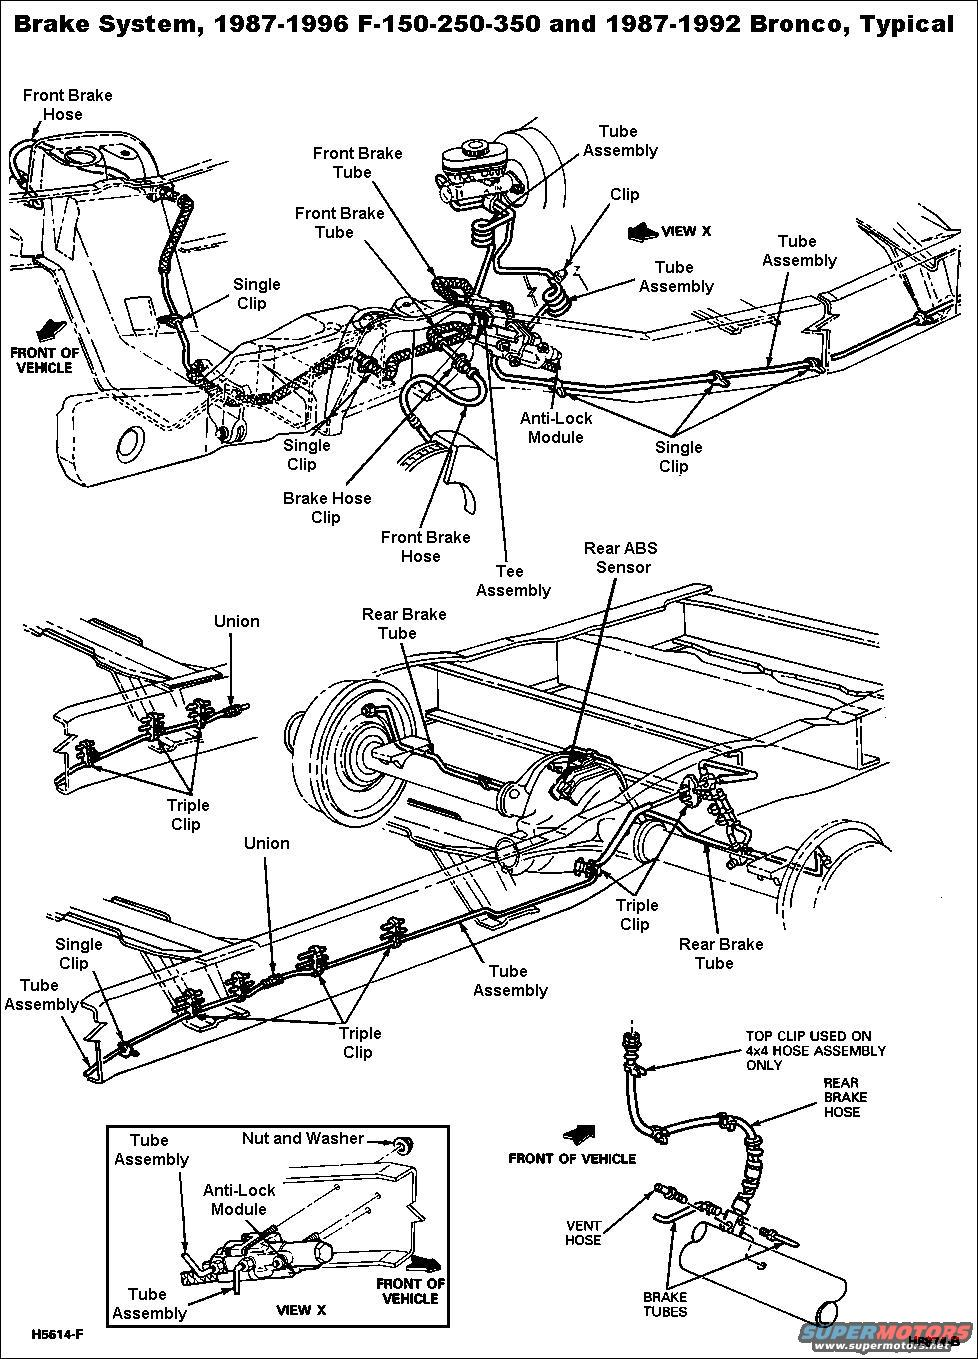 Ford+taurus+brake+line+diagram on 1987 Ford Ranger Fuel Filter